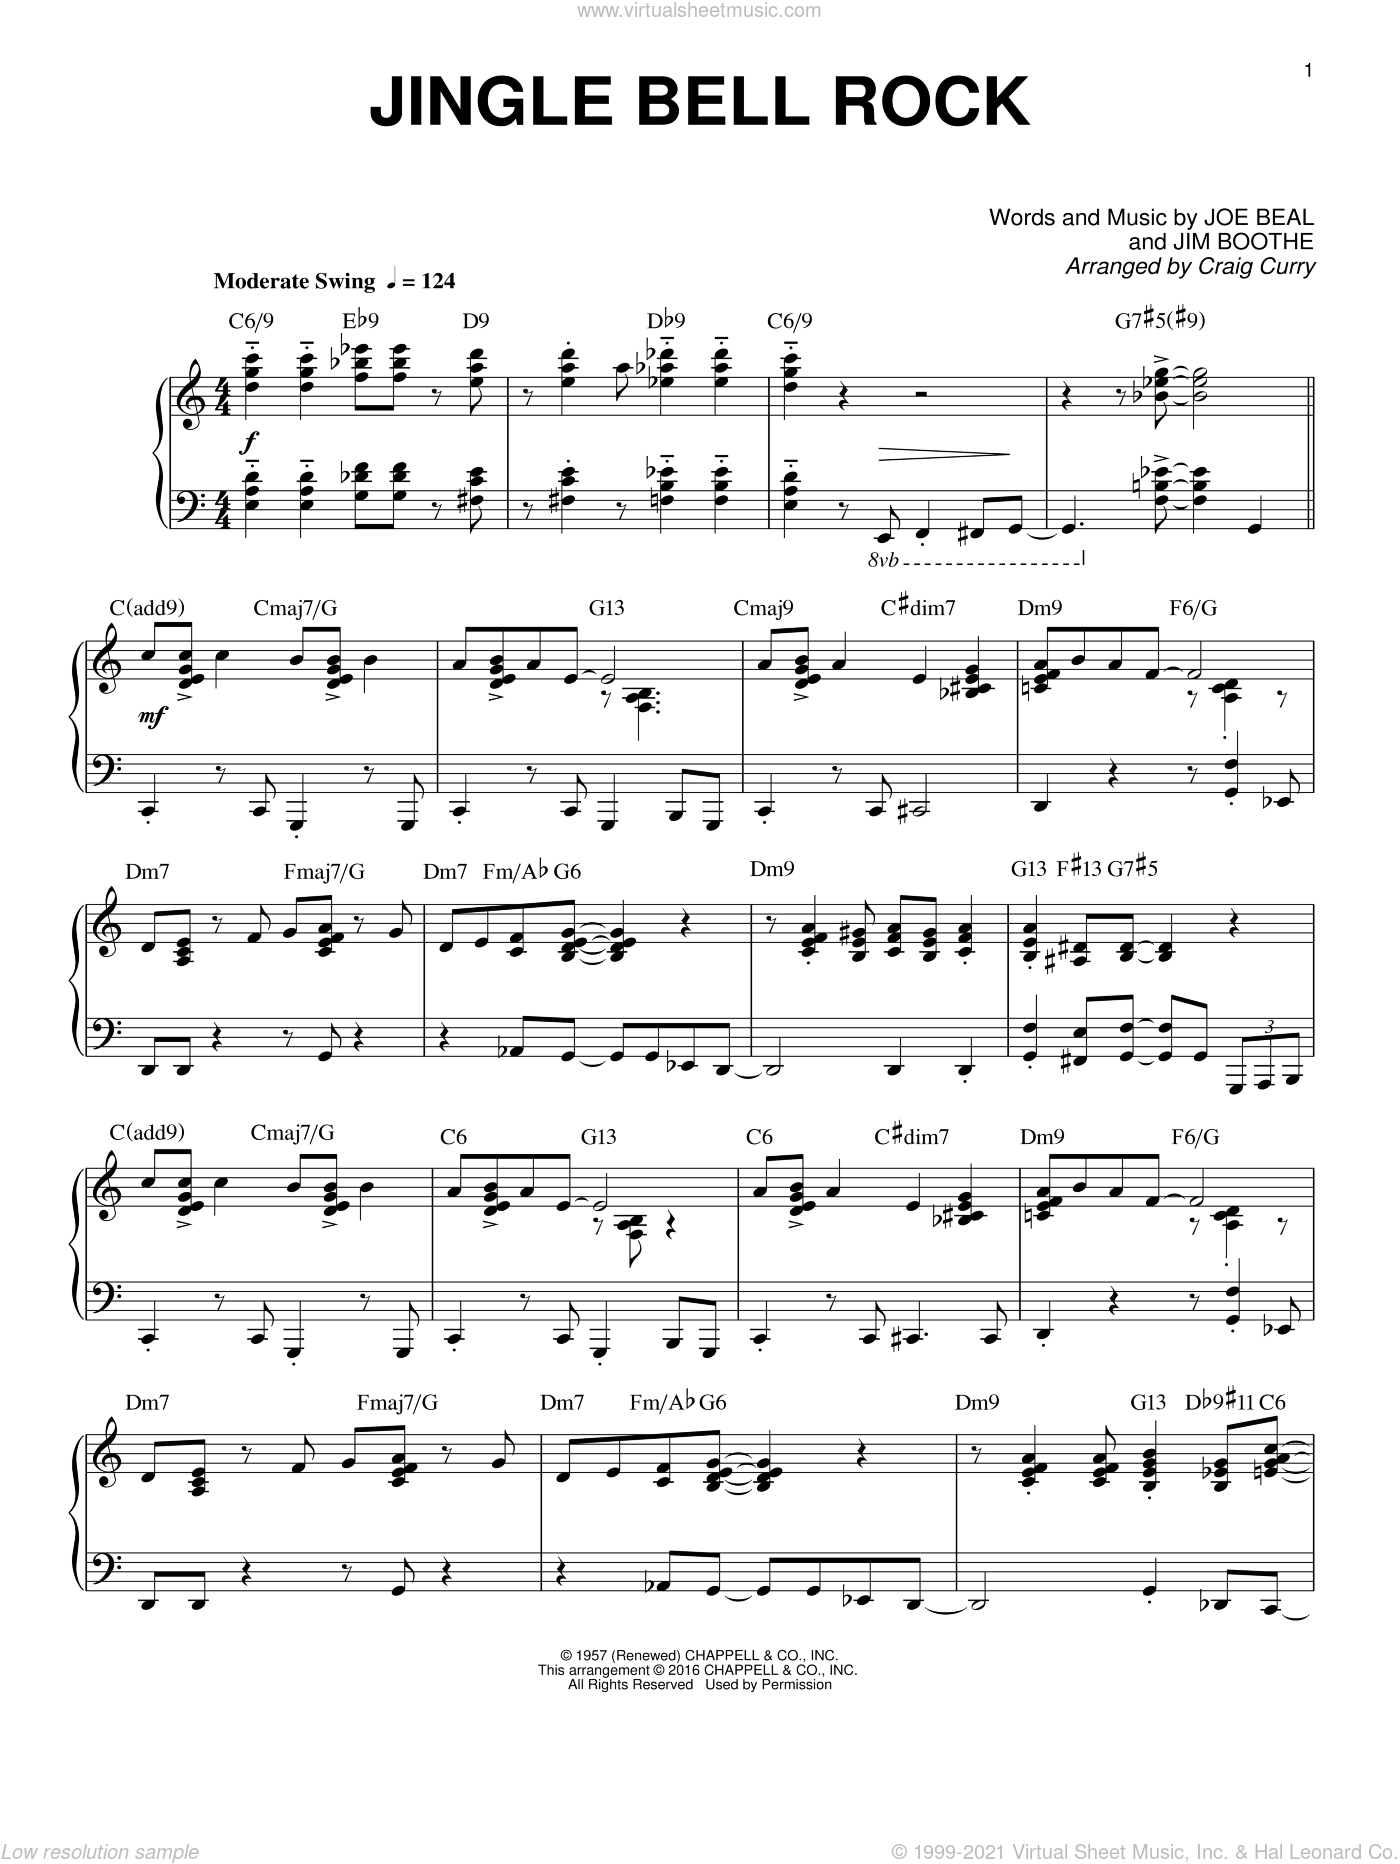 Jingle Bell Rock sheet music for piano solo by Joe Beal, Craig Curry and Jim Boothe, intermediate skill level